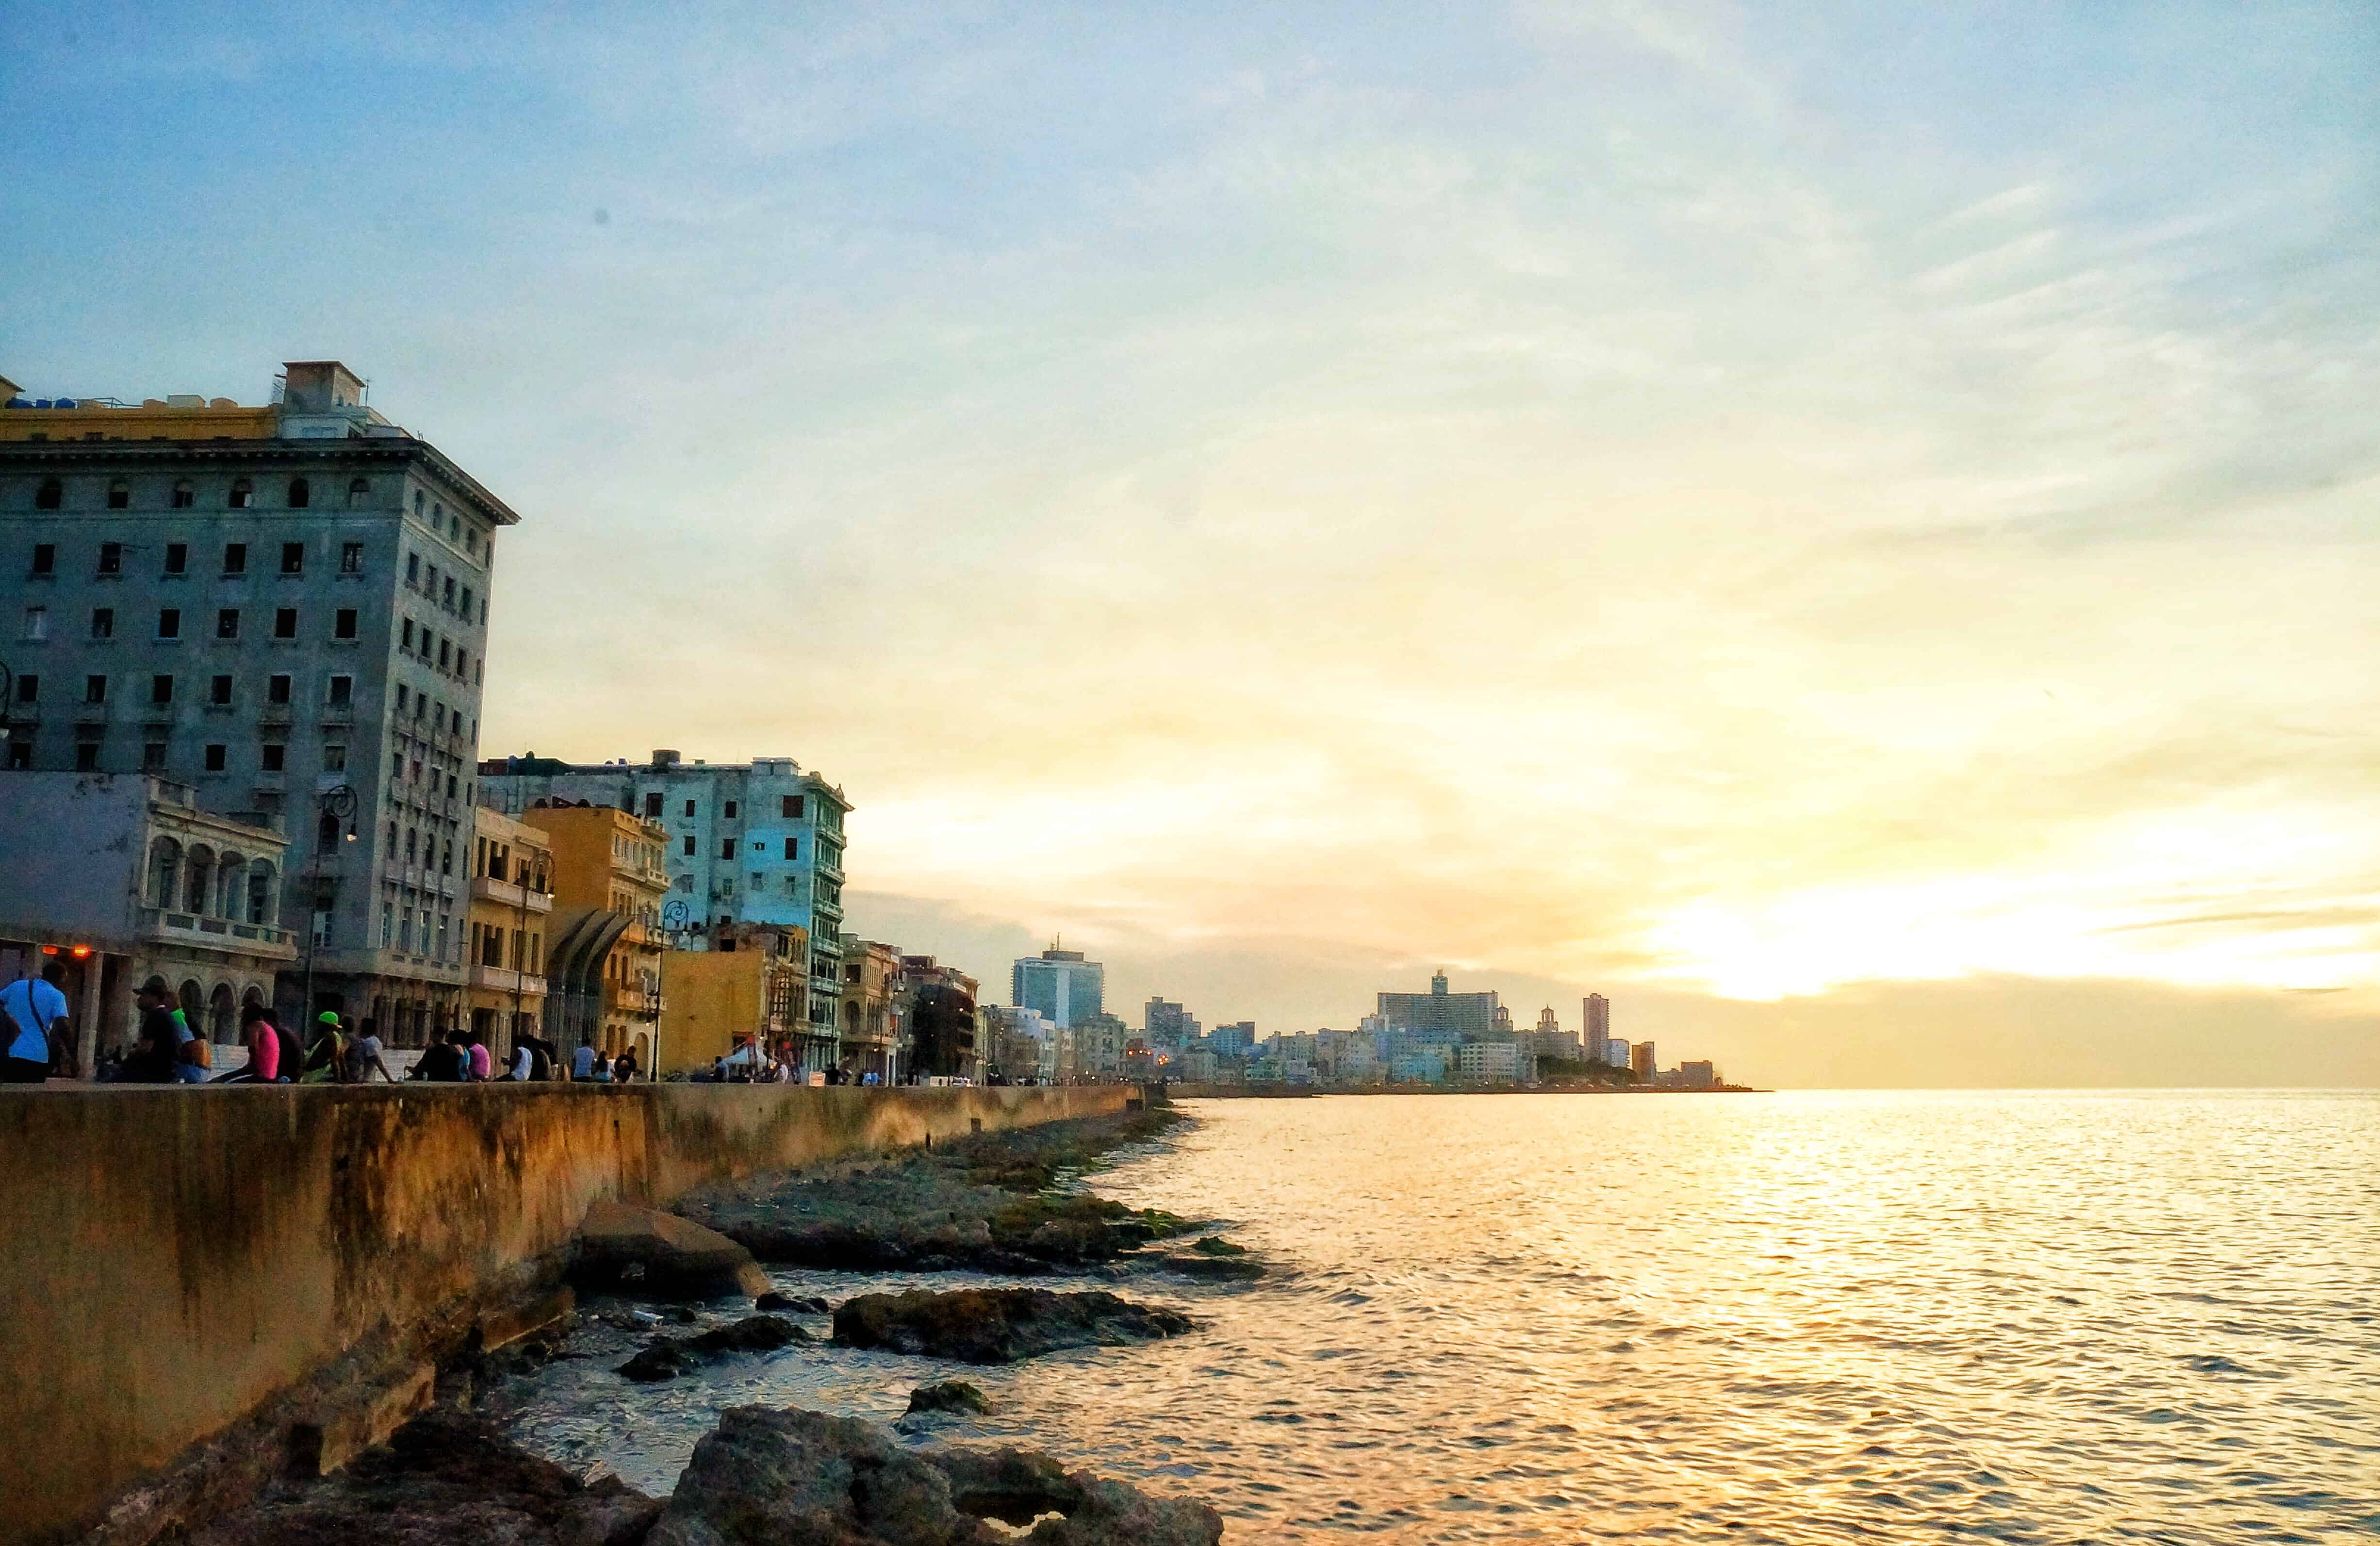 a sunset view of the famous malecón in havana cuba